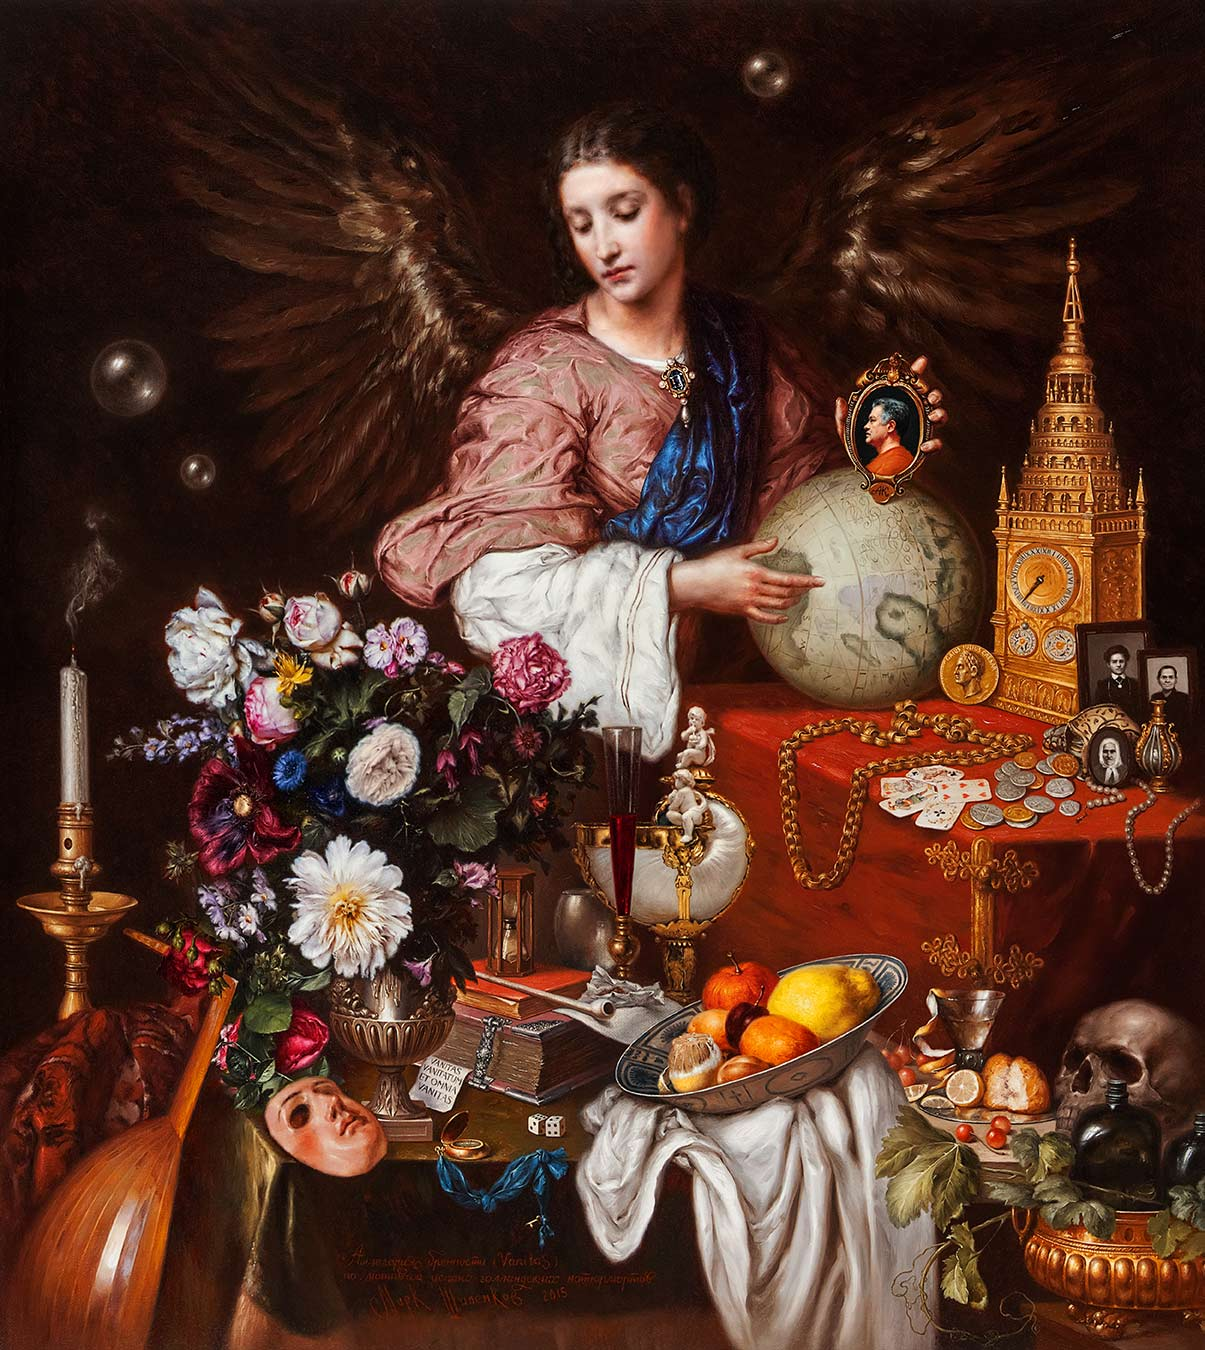 Allegory of Vanity. Based on the Spanish-Dutch still-life paintings of the XVII century.